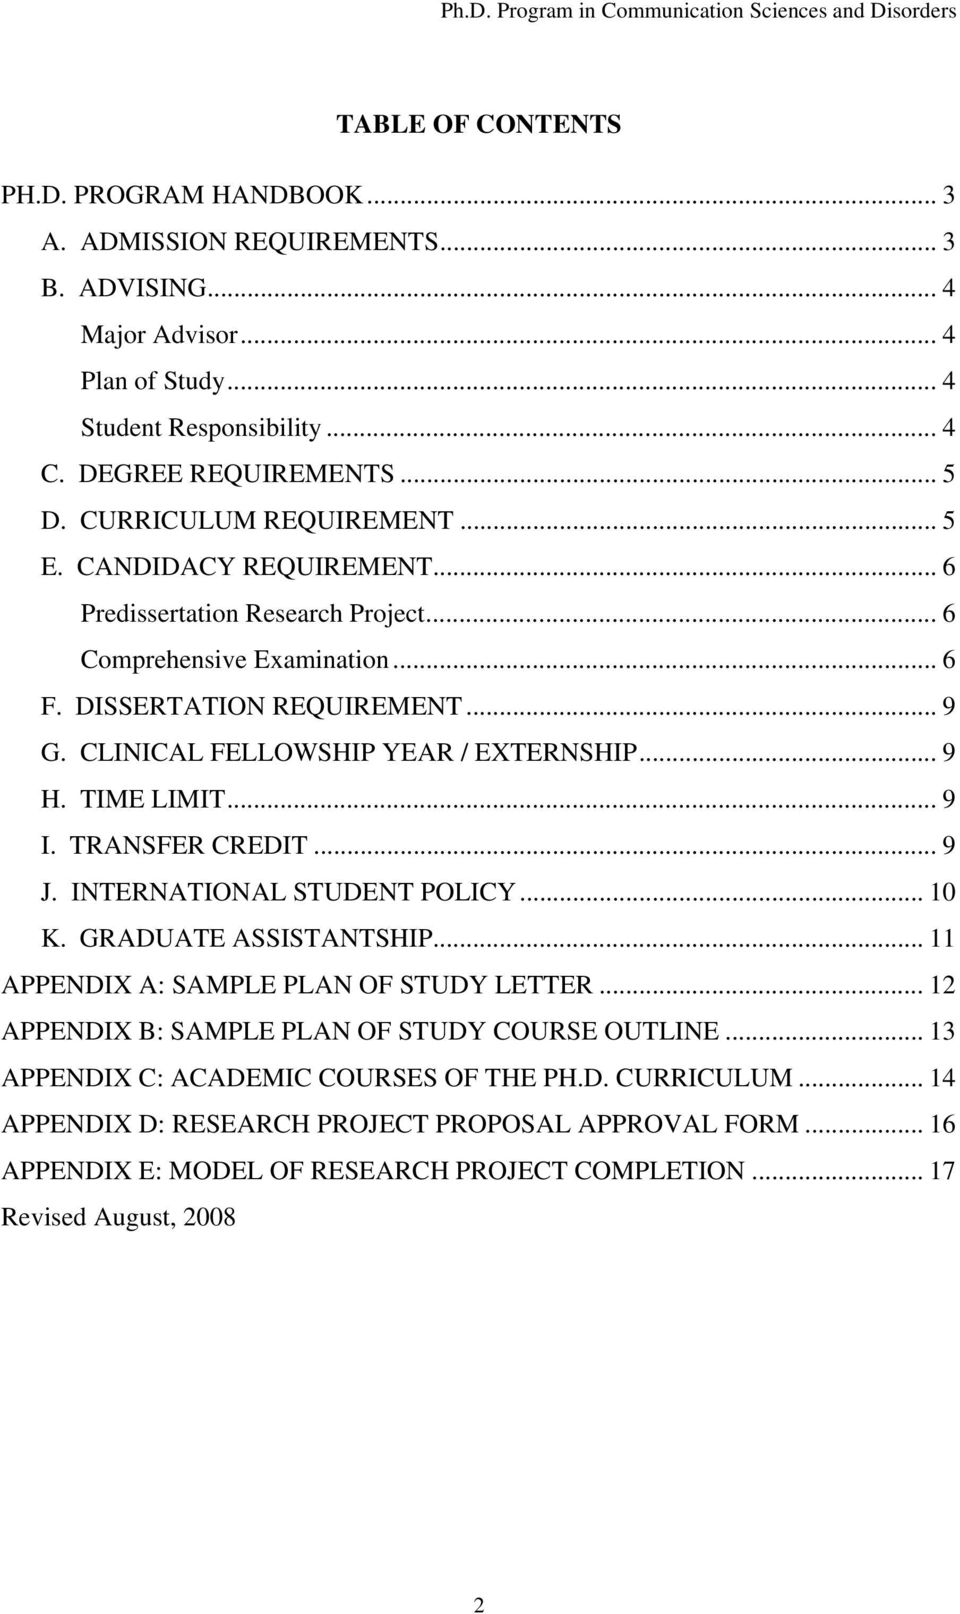 CLINICAL FELLOWSHIP YEAR / EXTERNSHIP... 9 H. TIME LIMIT... 9 I. TRANSFER CREDIT... 9 J. INTERNATIONAL STUDENT POLICY... 10 K. GRADUATE ASSISTANTSHIP... 11 APPENDIX A: SAMPLE PLAN OF STUDY LETTER.